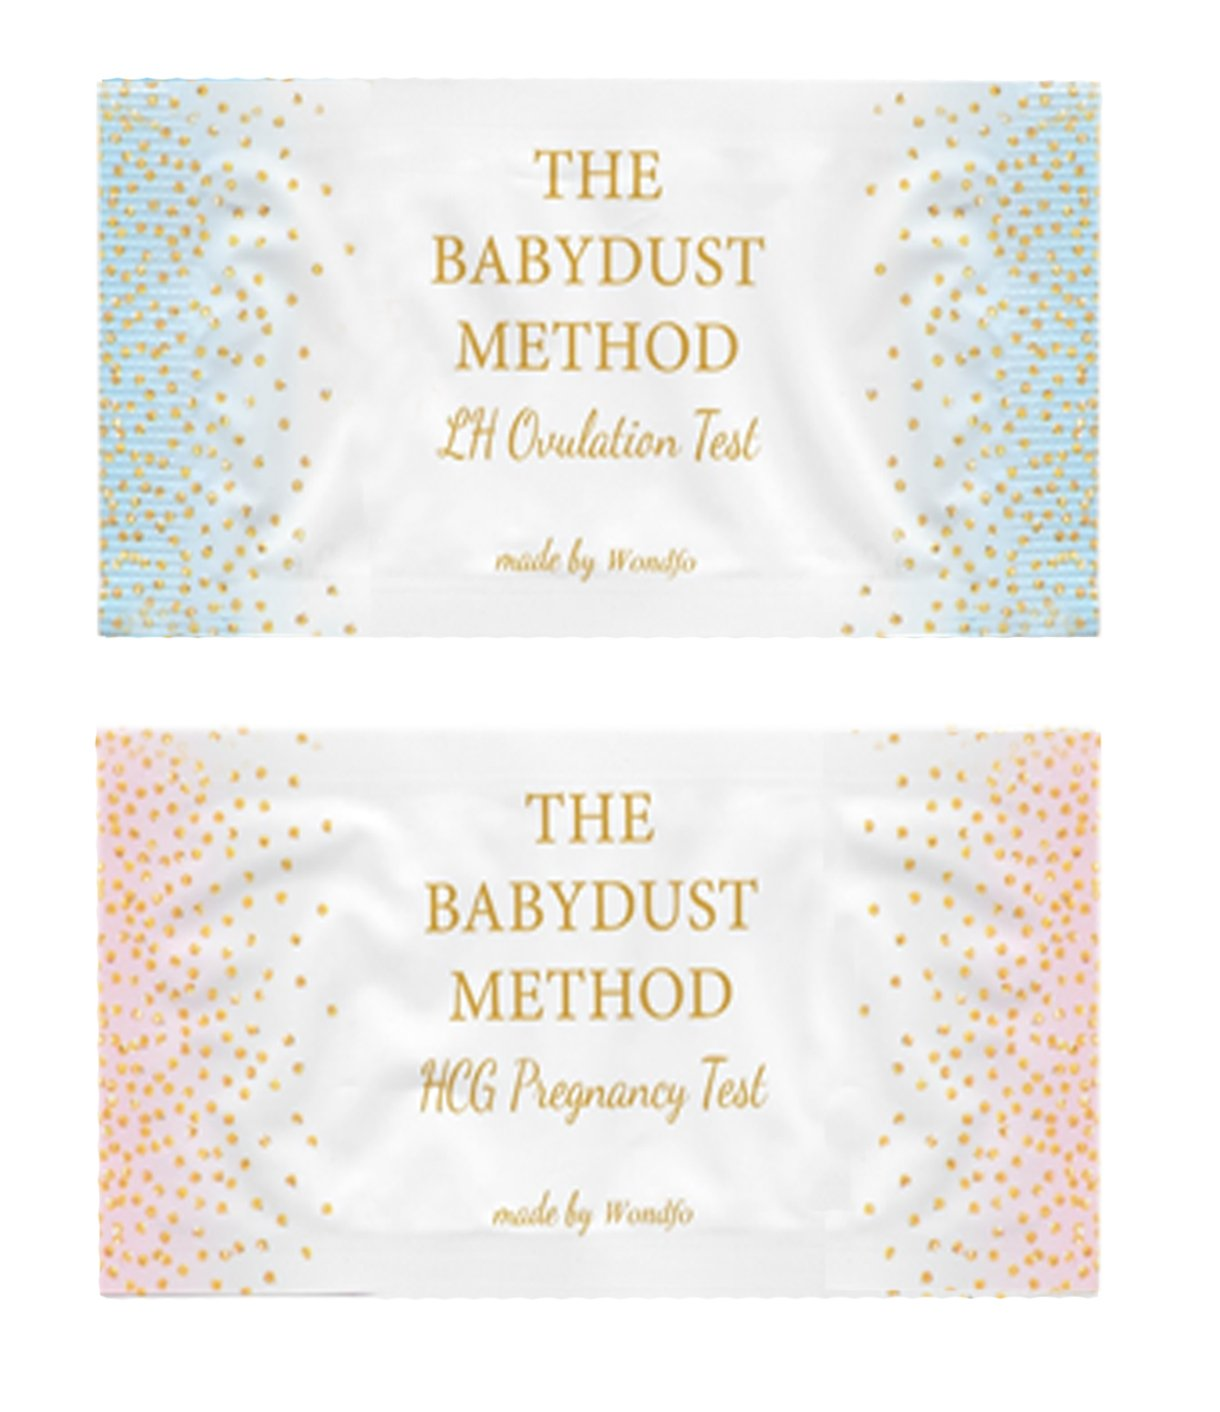 Wondfo Extra Wide Tests - by The Babydust Method - 100 LH ovulation and 20  HCG pregnancy test strips